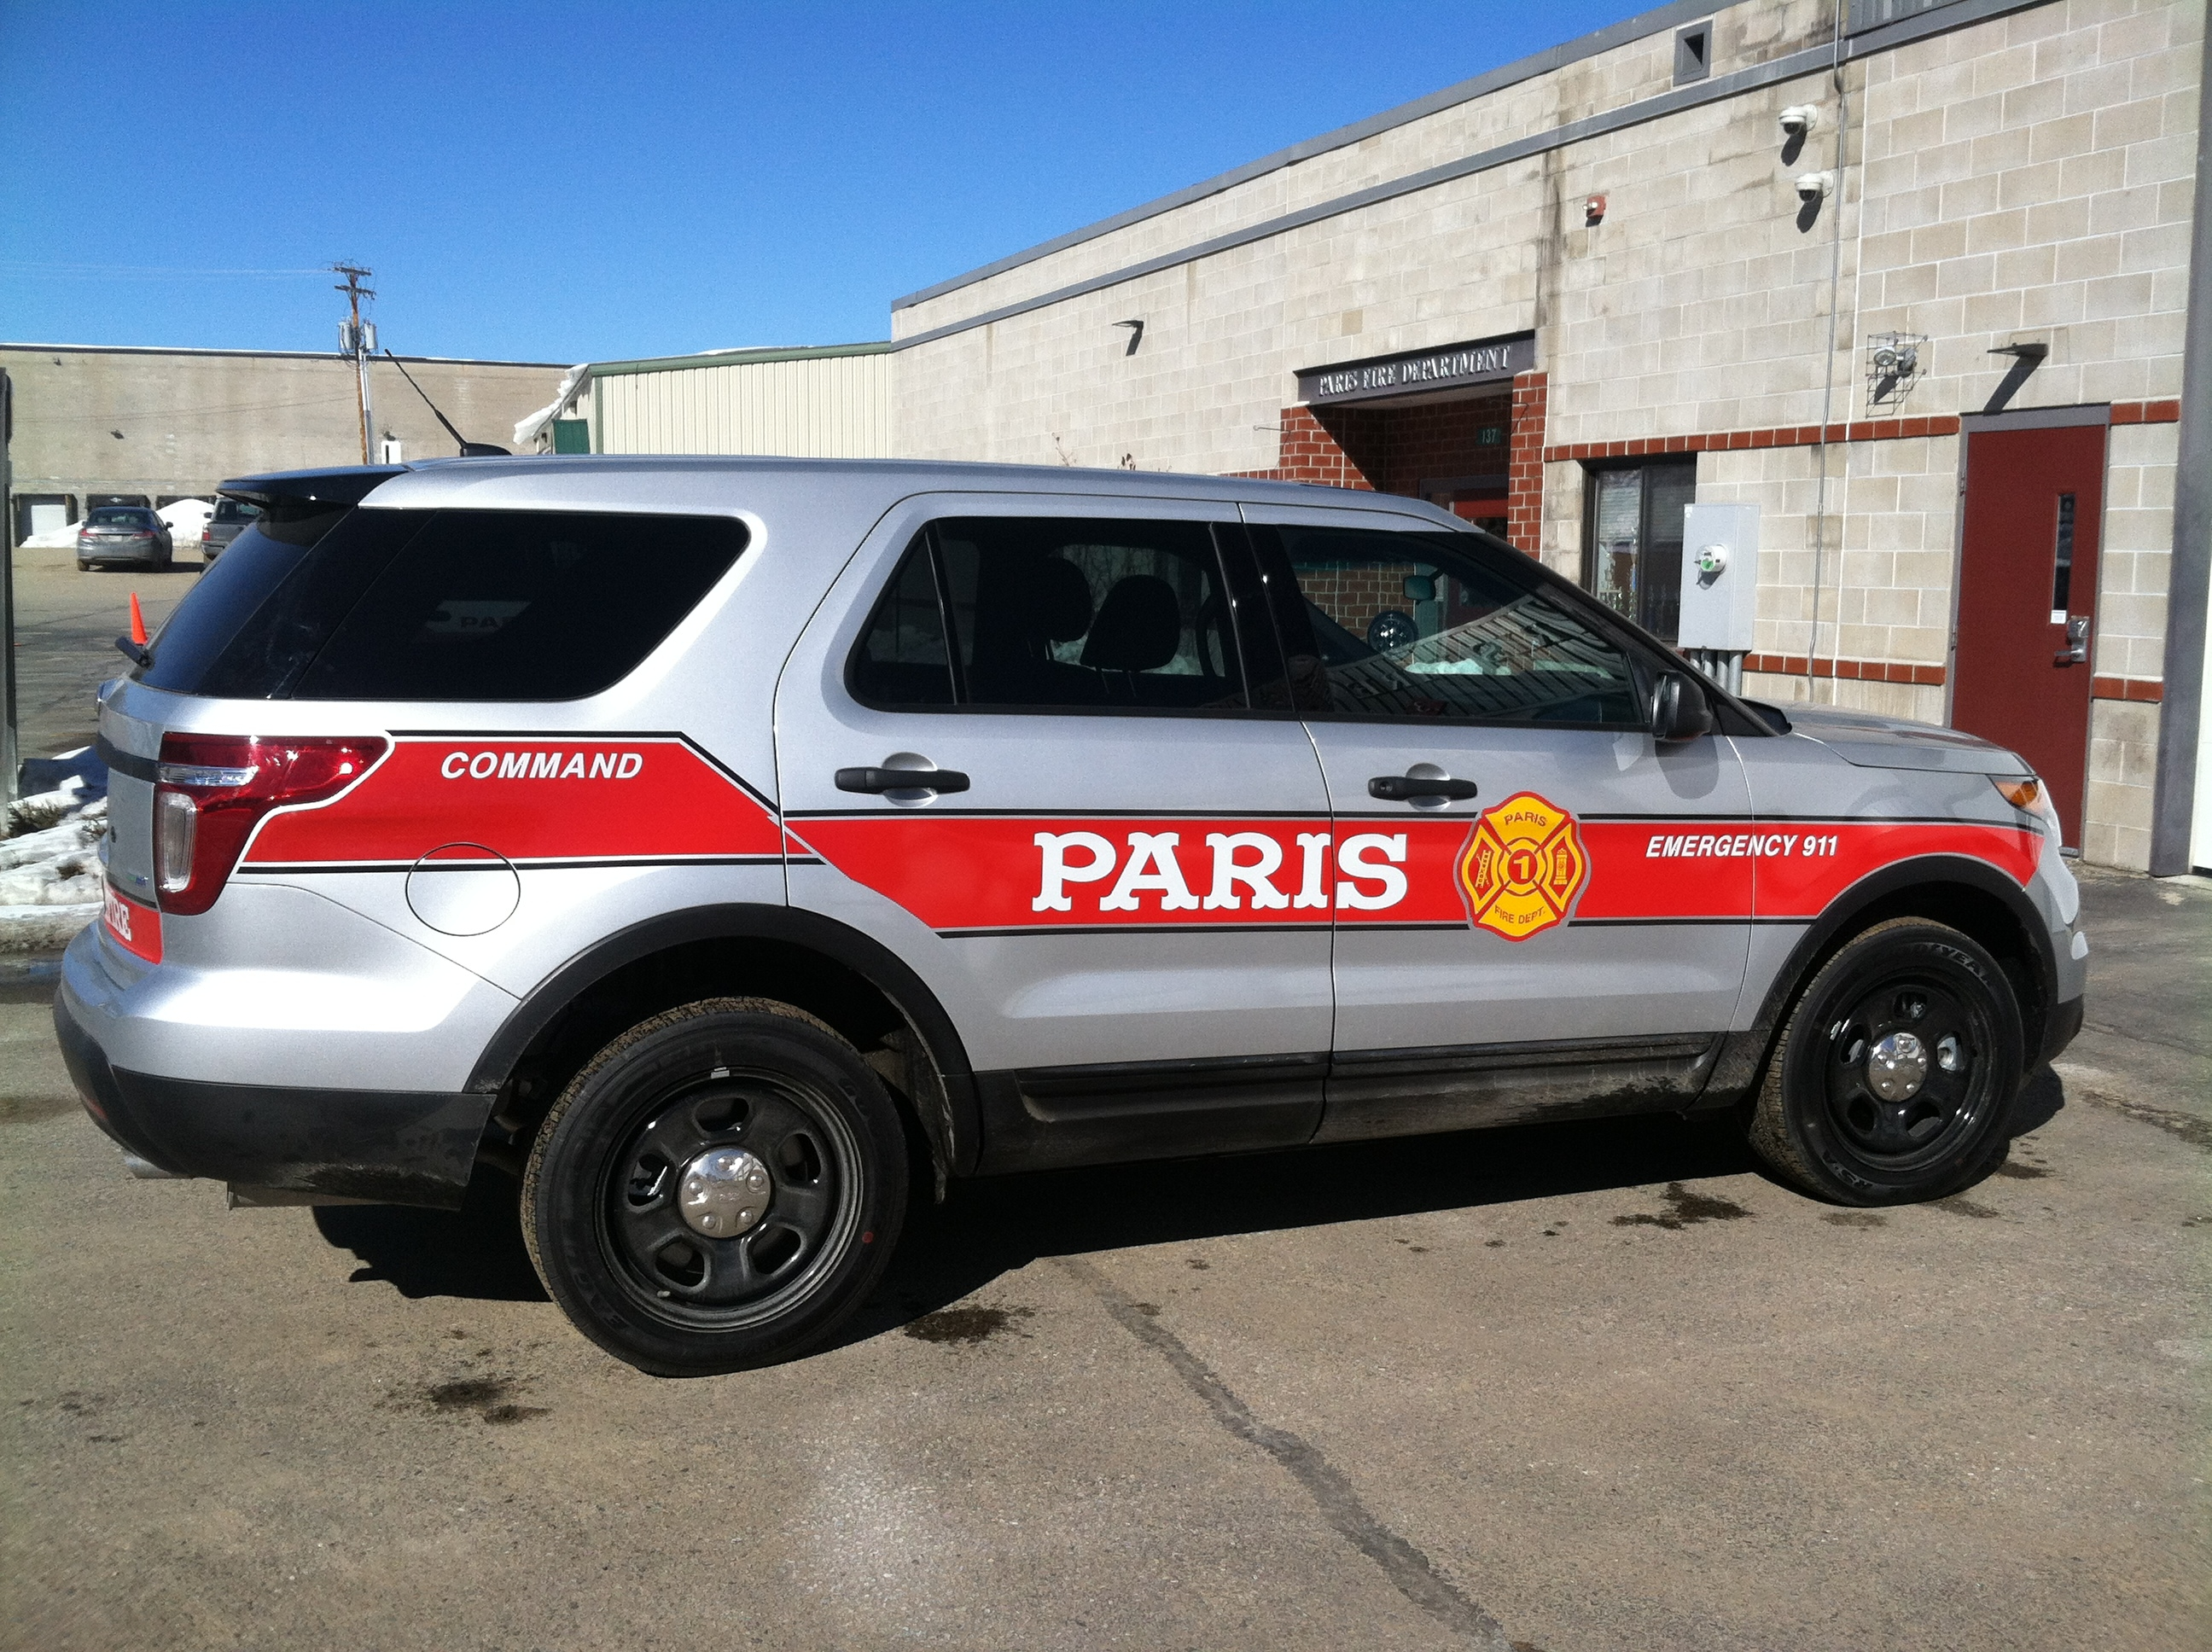 Fire Department Apparatus | Town of Paris, Maine